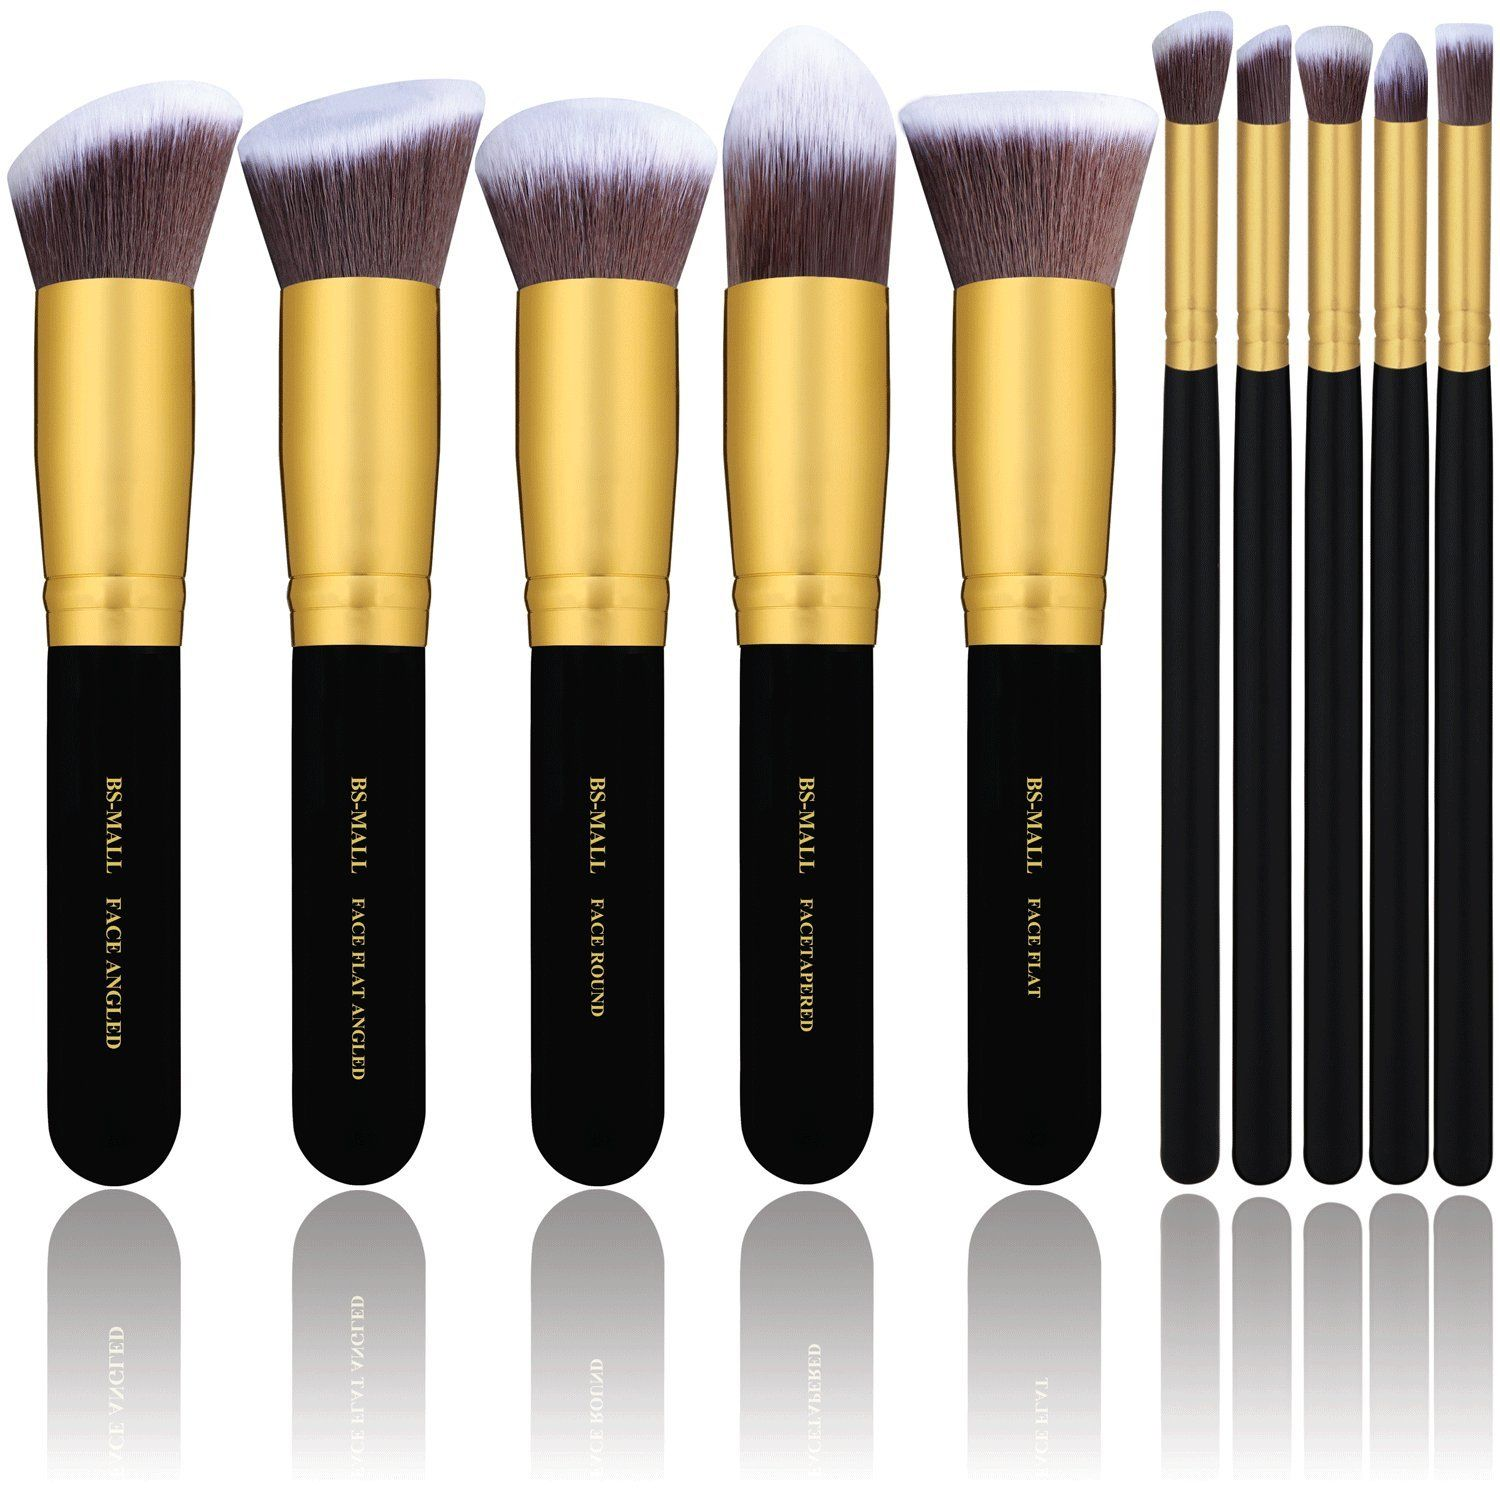 BSMALLTM Makeup Brushes Premium Makeup Brush Set Synthetic